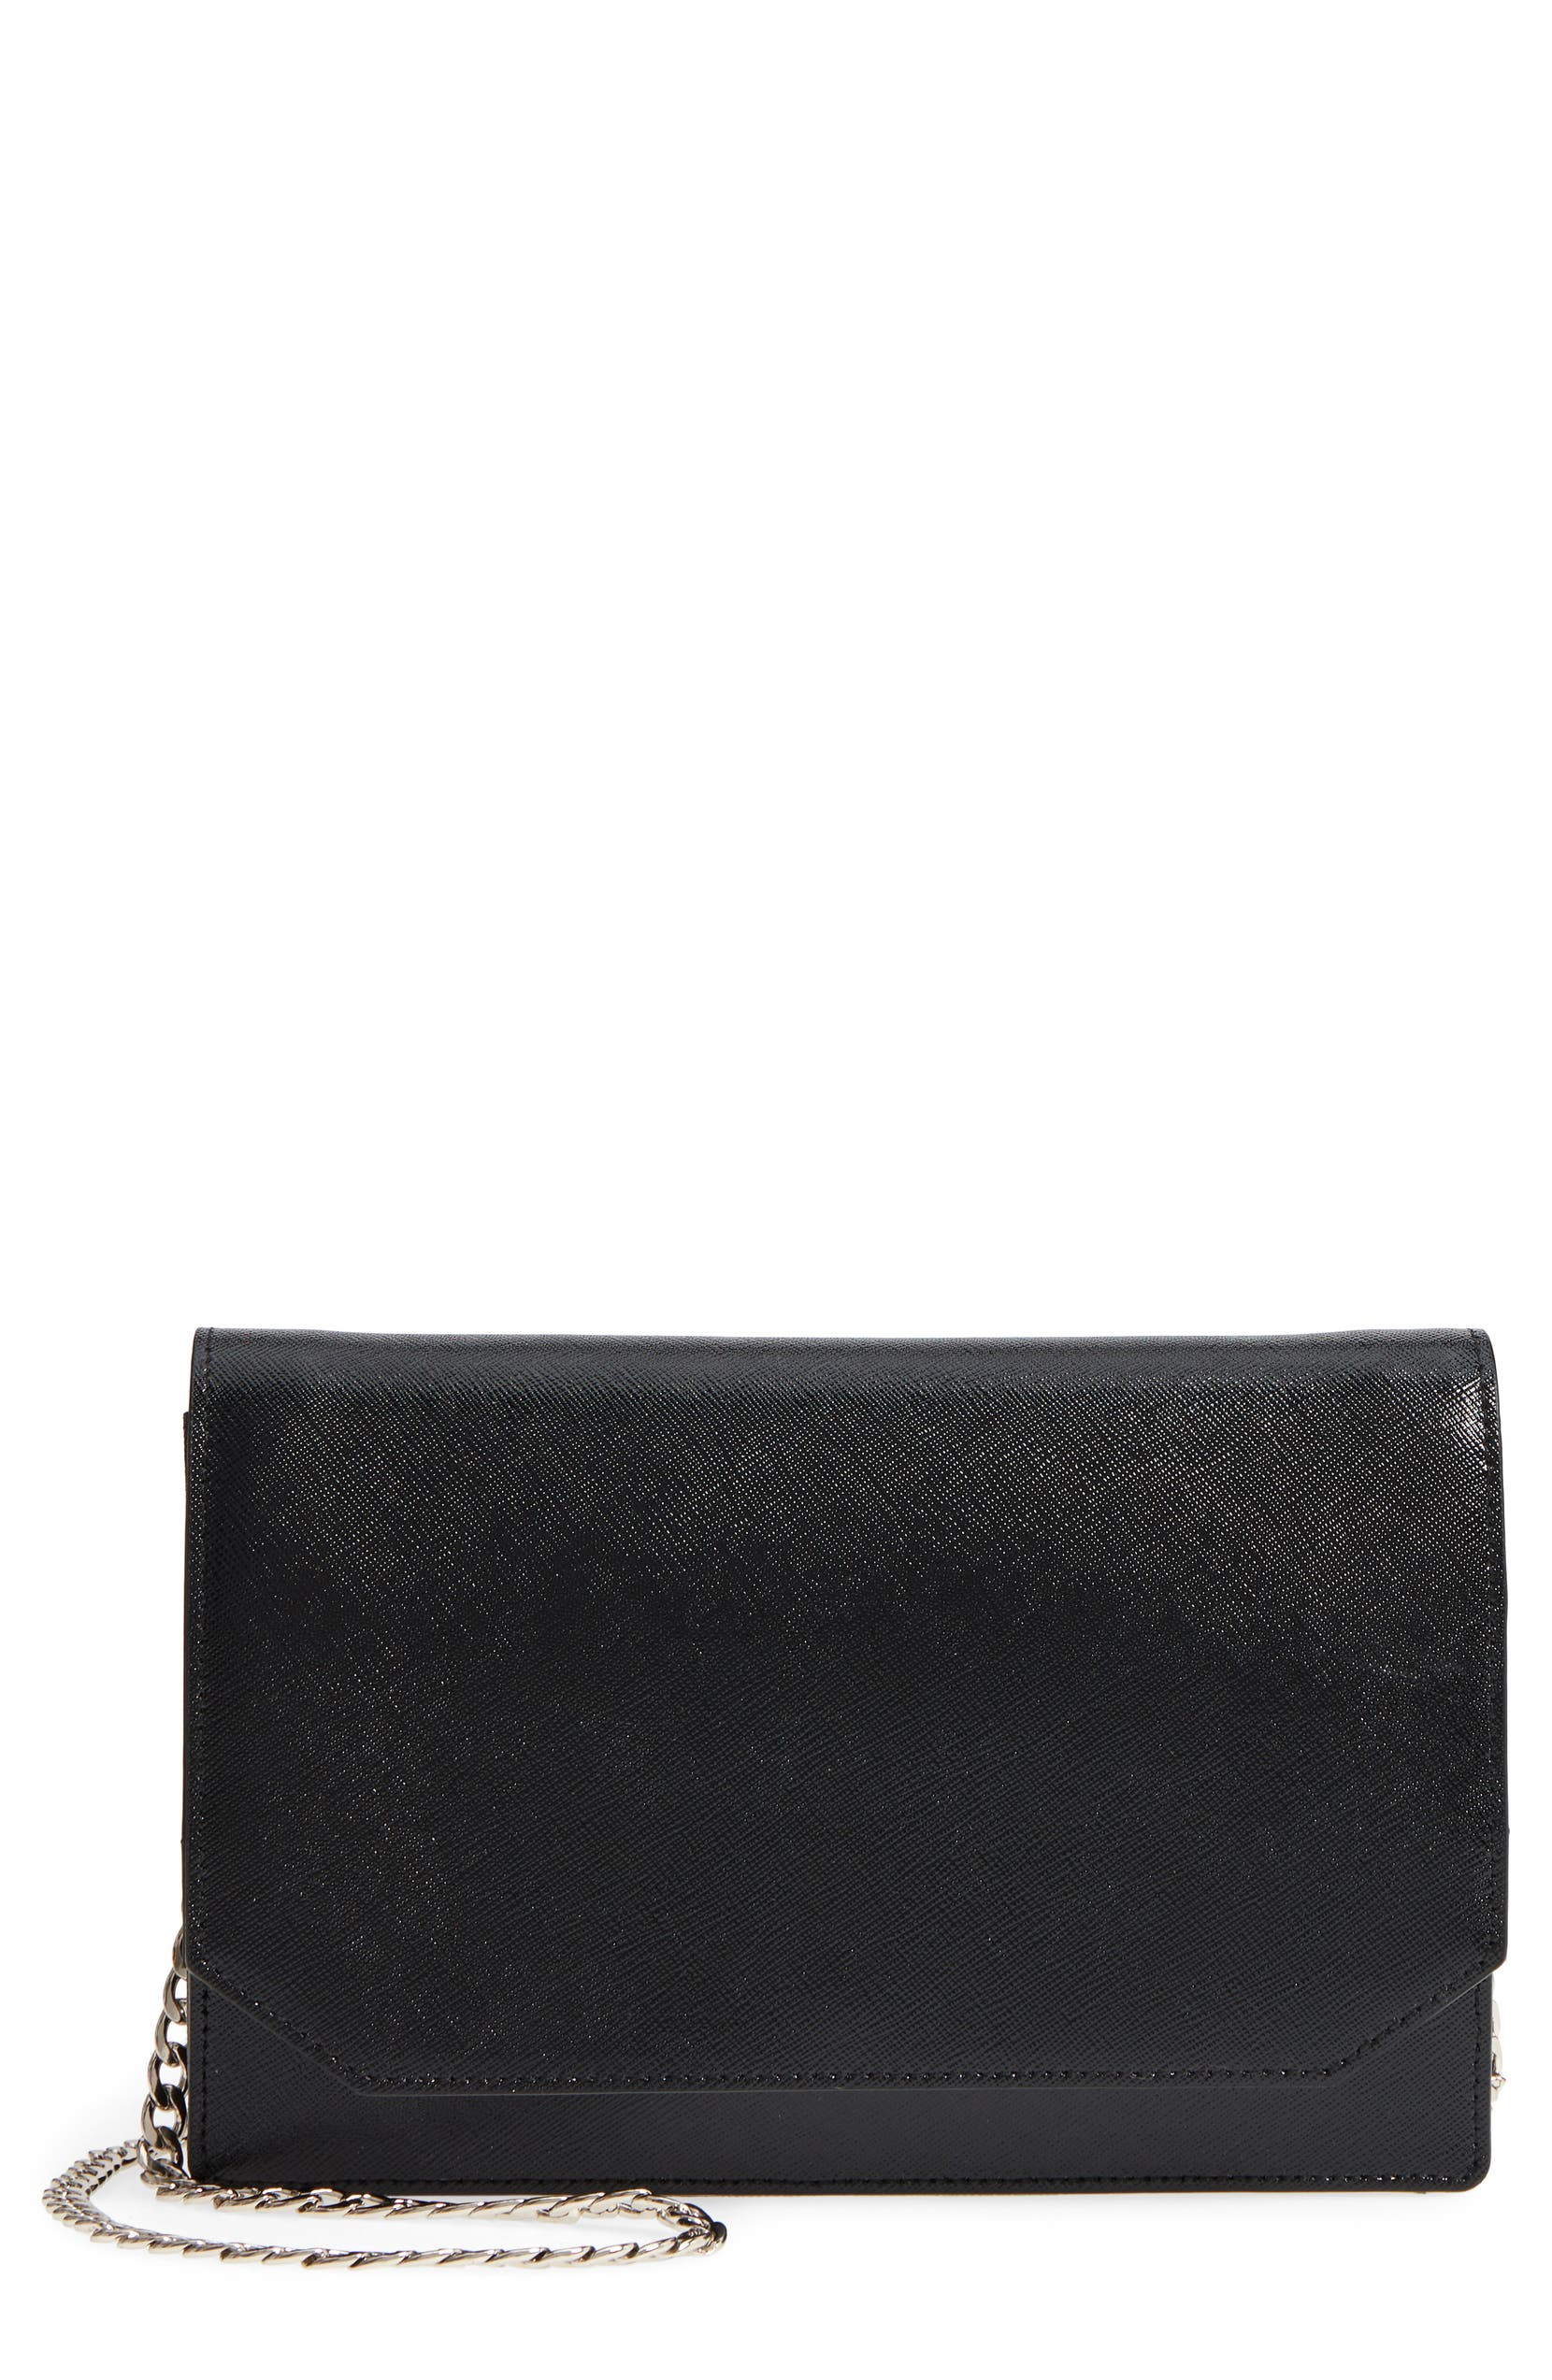 3e993a6bd34d06 Nordstrom Hunter Saffiano Leather Wallet on a Chain   Nordstrom